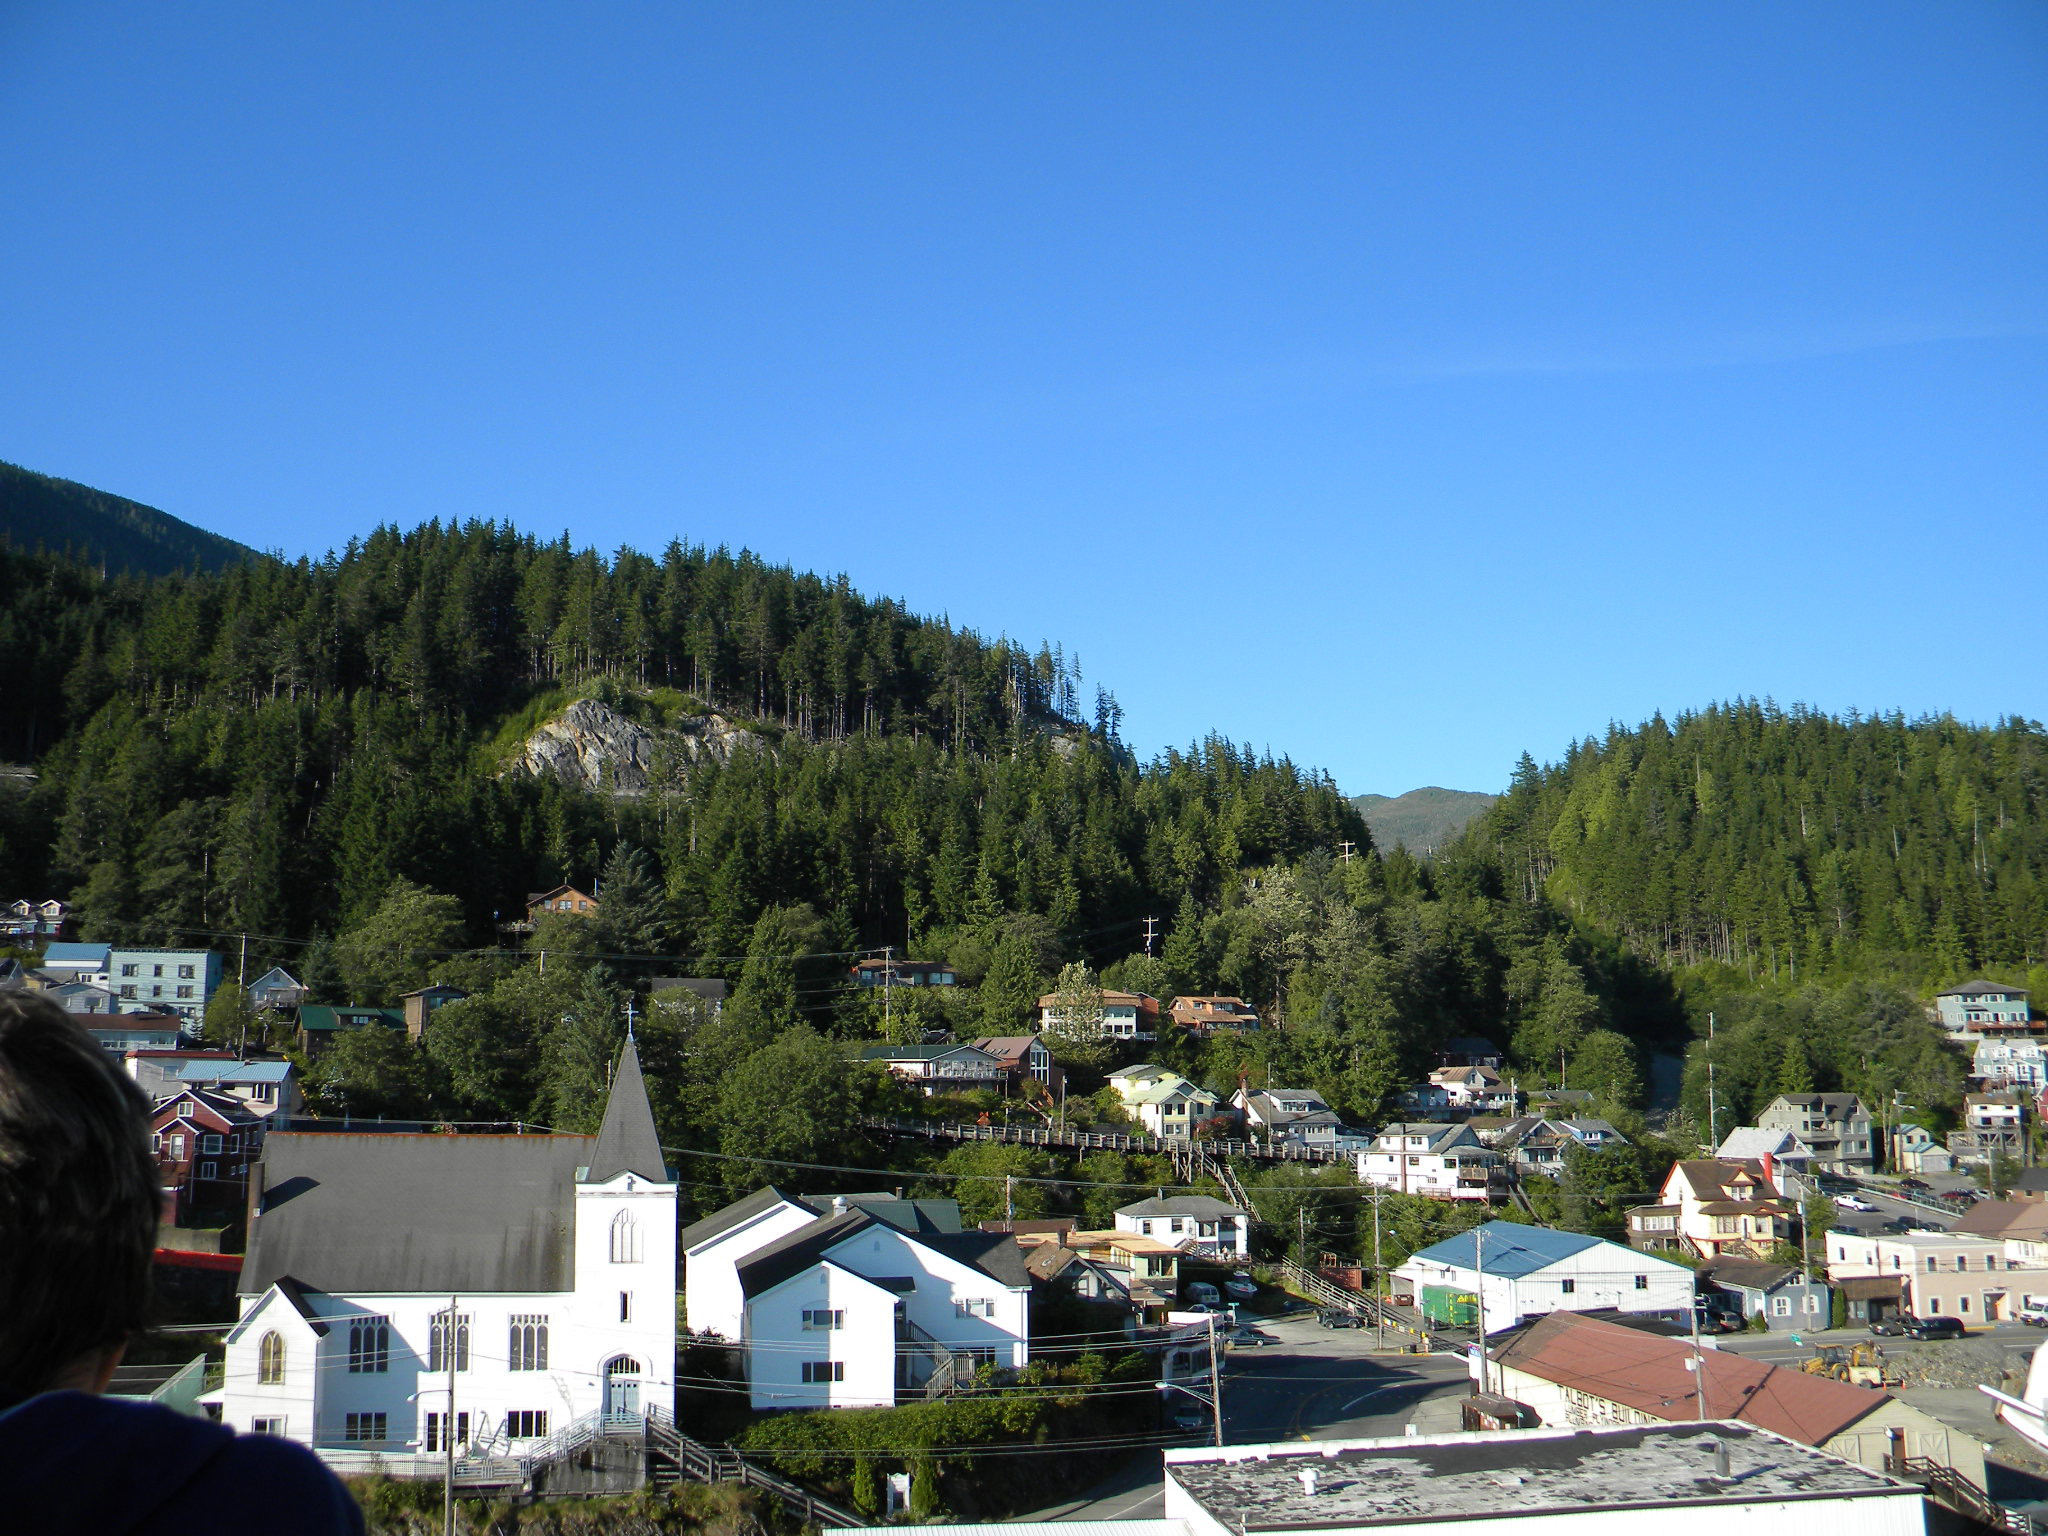 the city of Ketchikan, Alaska (view from the deck of our ship)